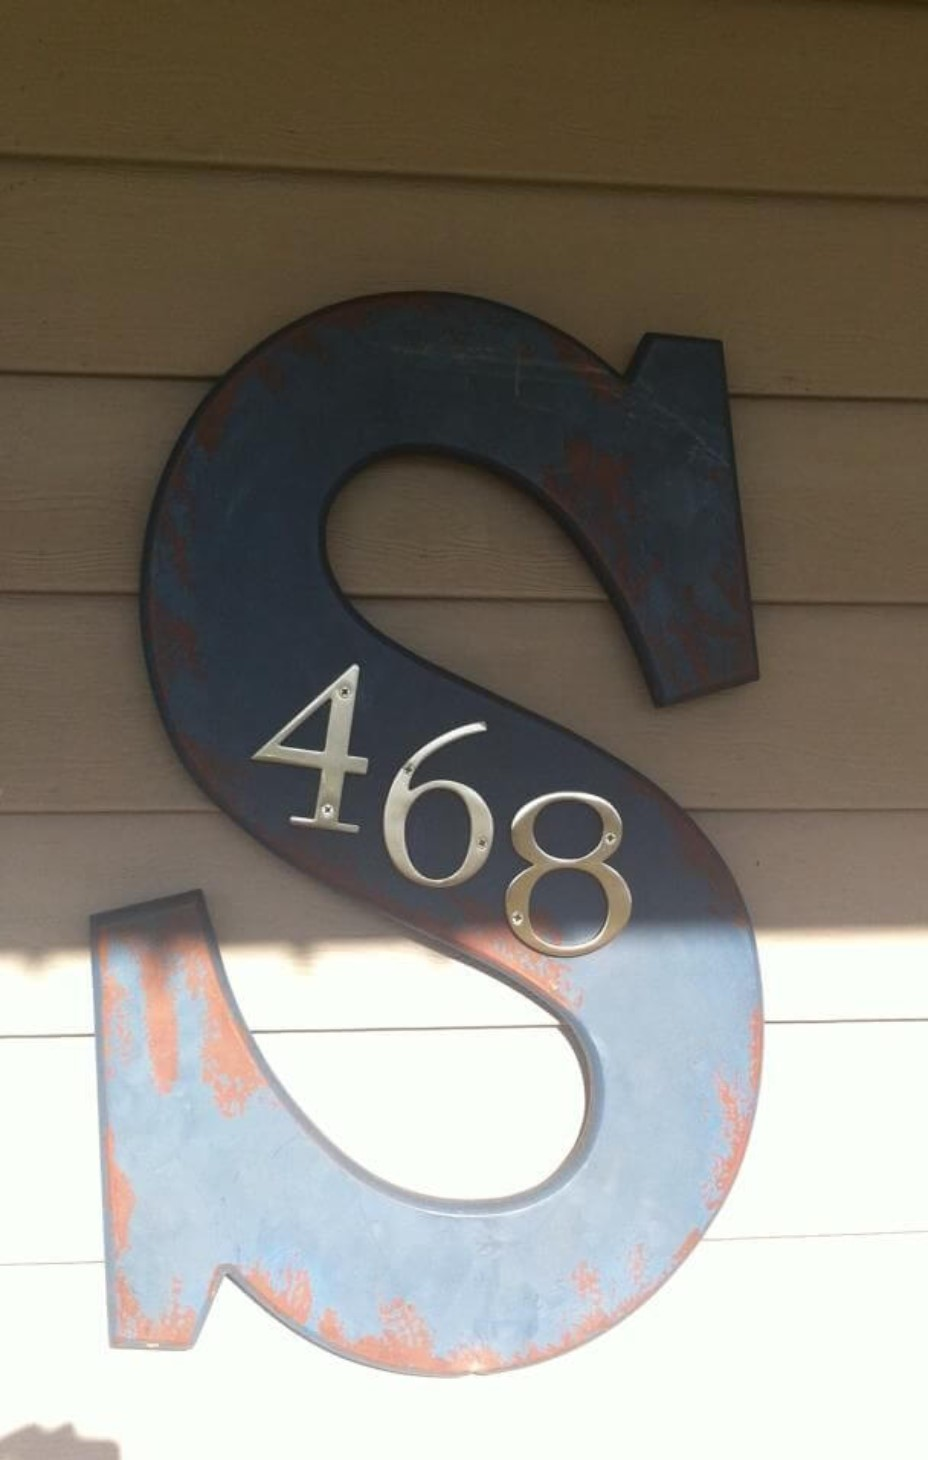 House numbers with alphabet